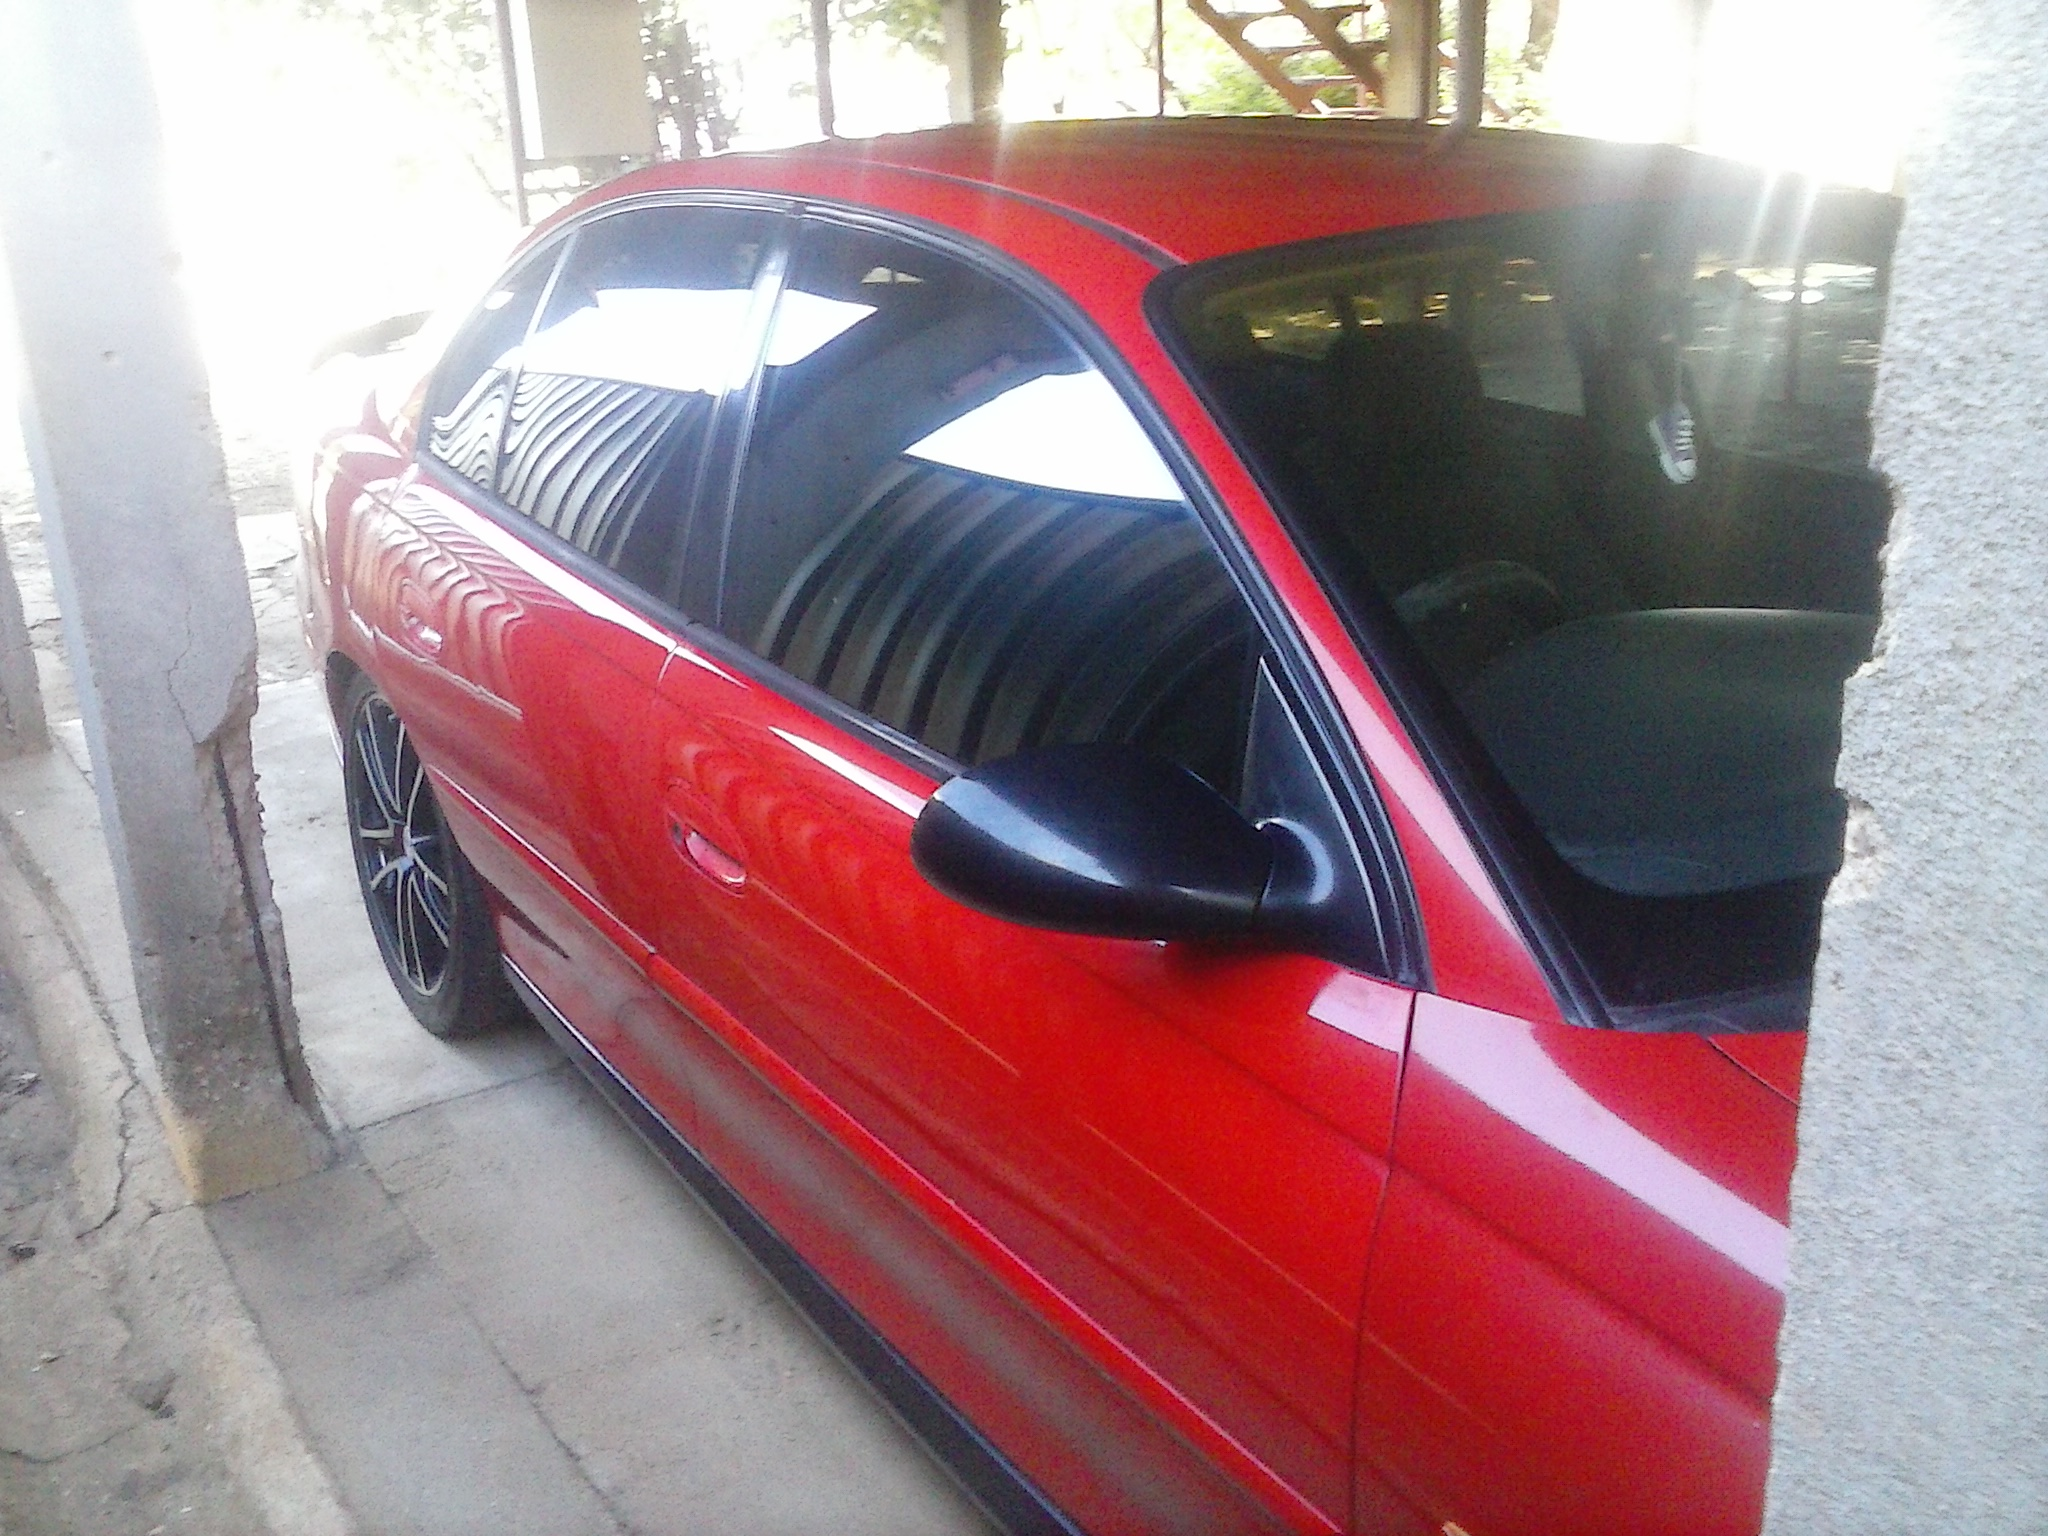 2001 Holden Commodore Lumina Vy For Sale Or Swap Qld